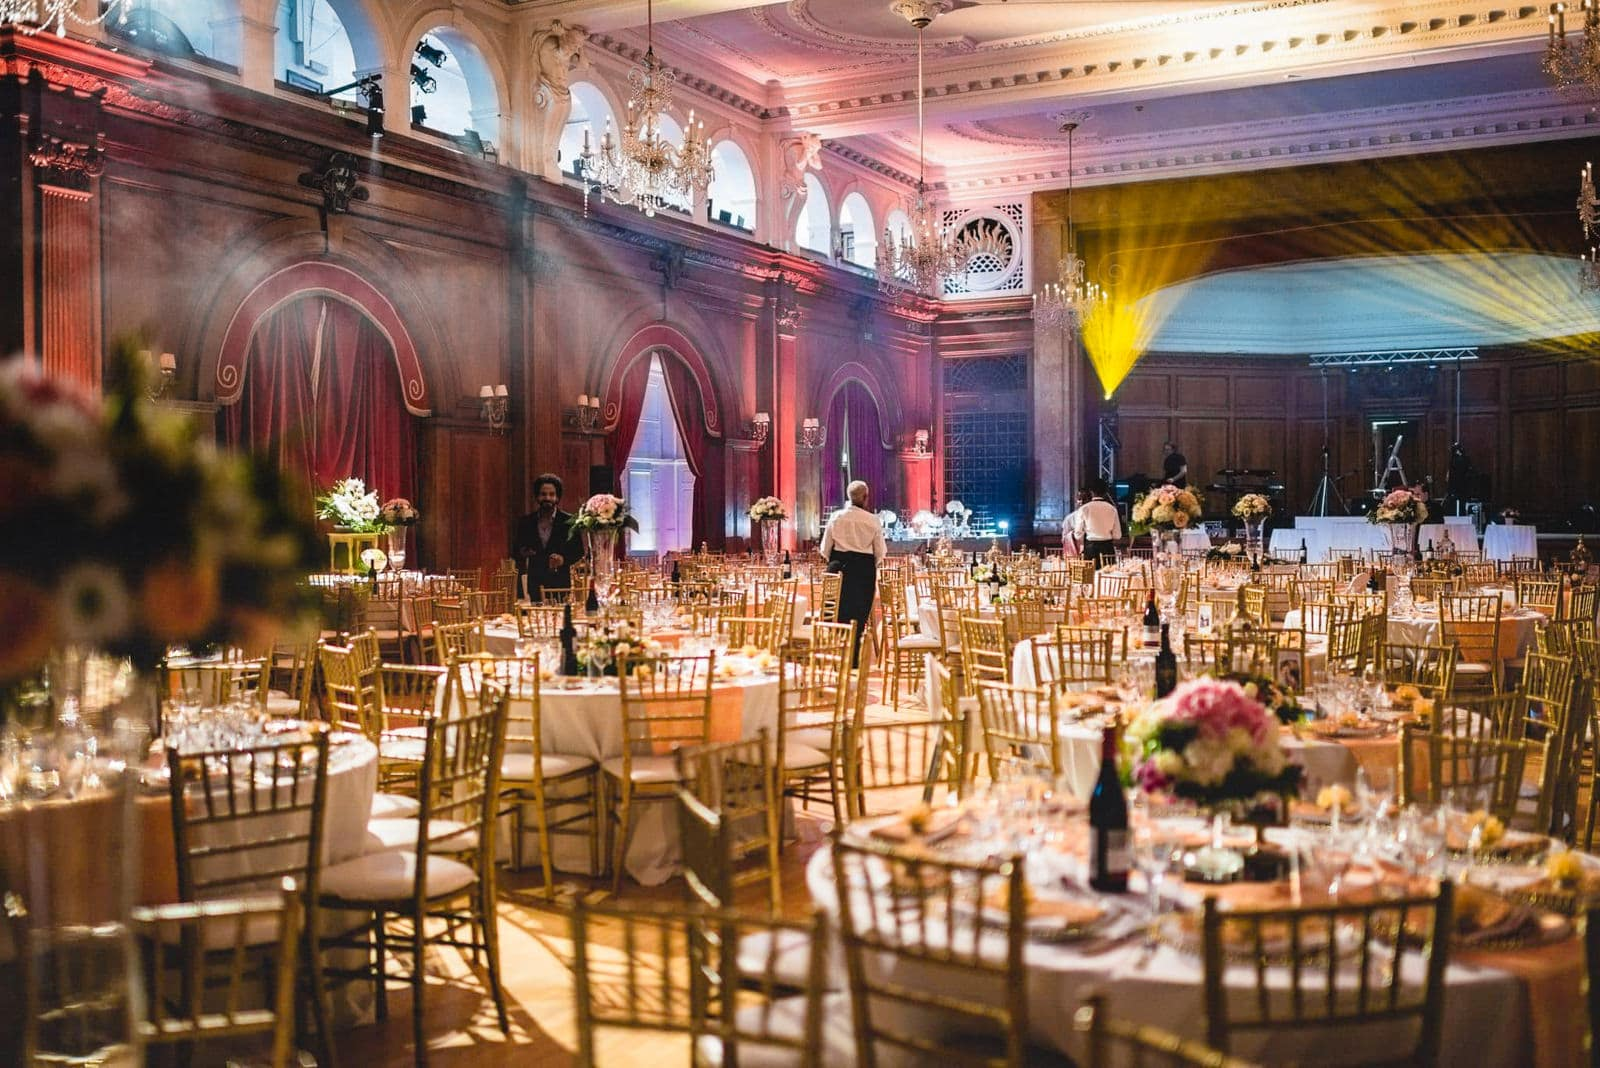 Porchester Hall decorated in a golden wedding theme